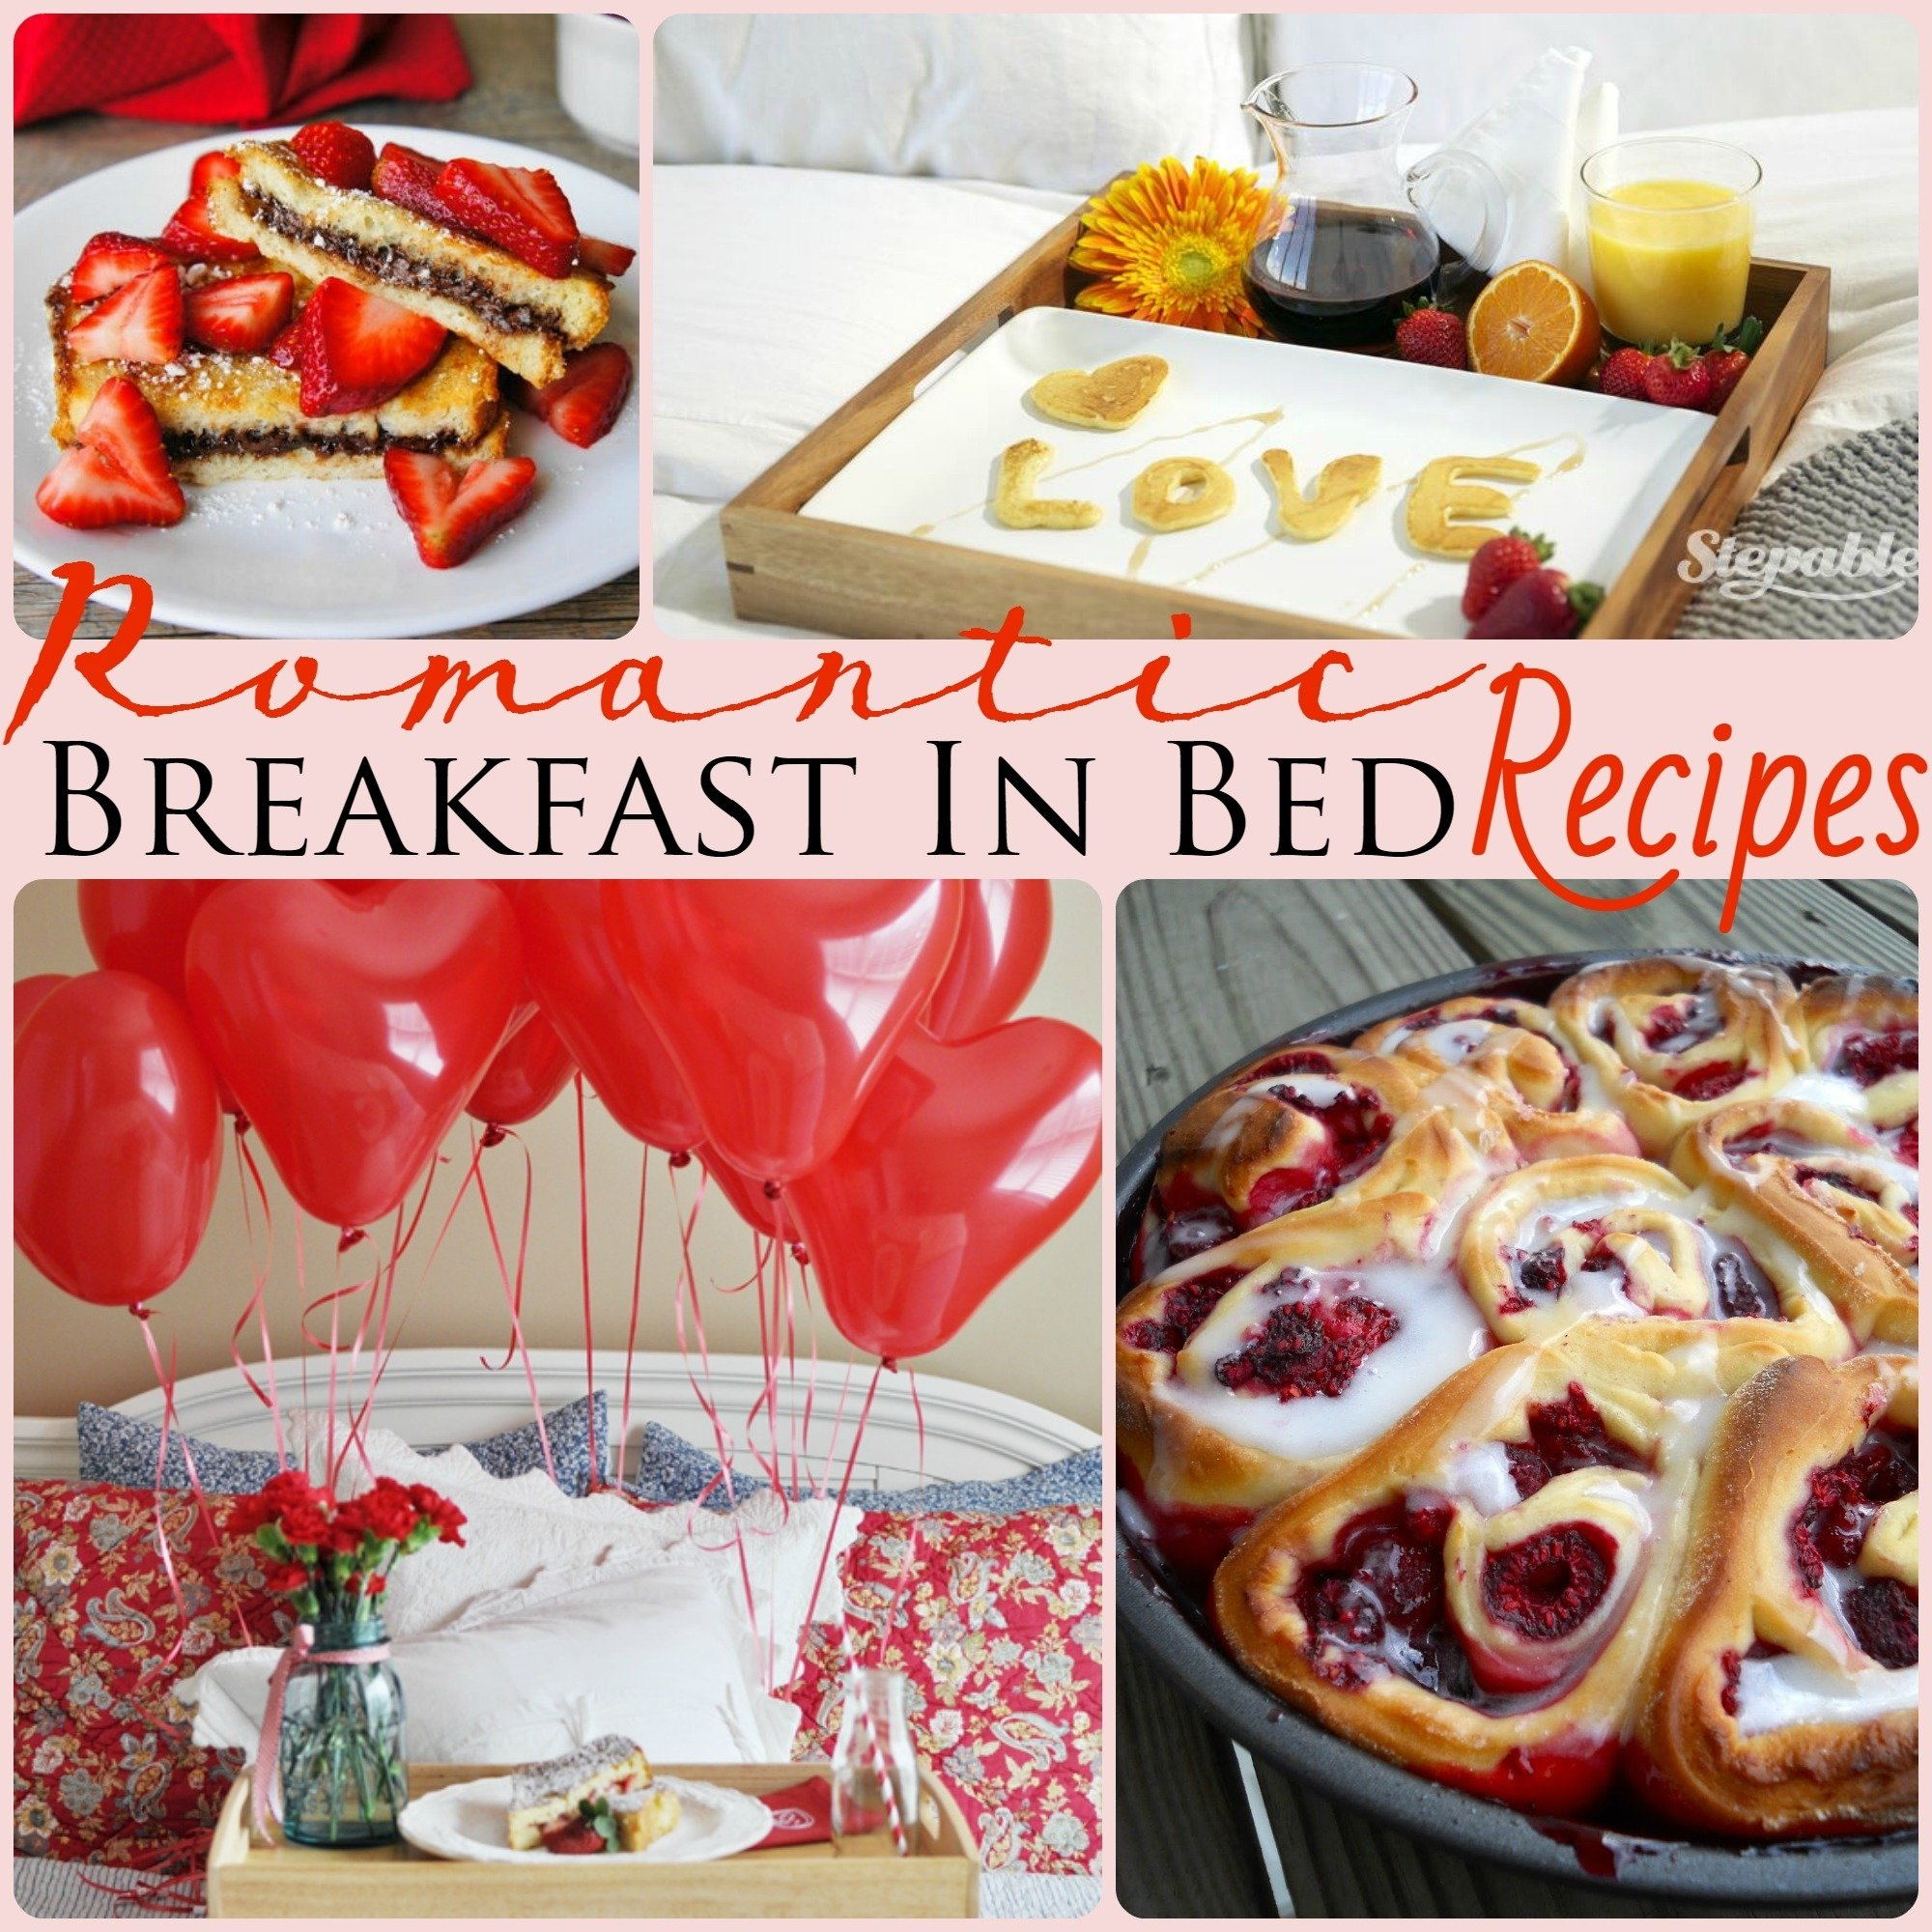 10 Ideal Romantic Breakfast Ideas For Him